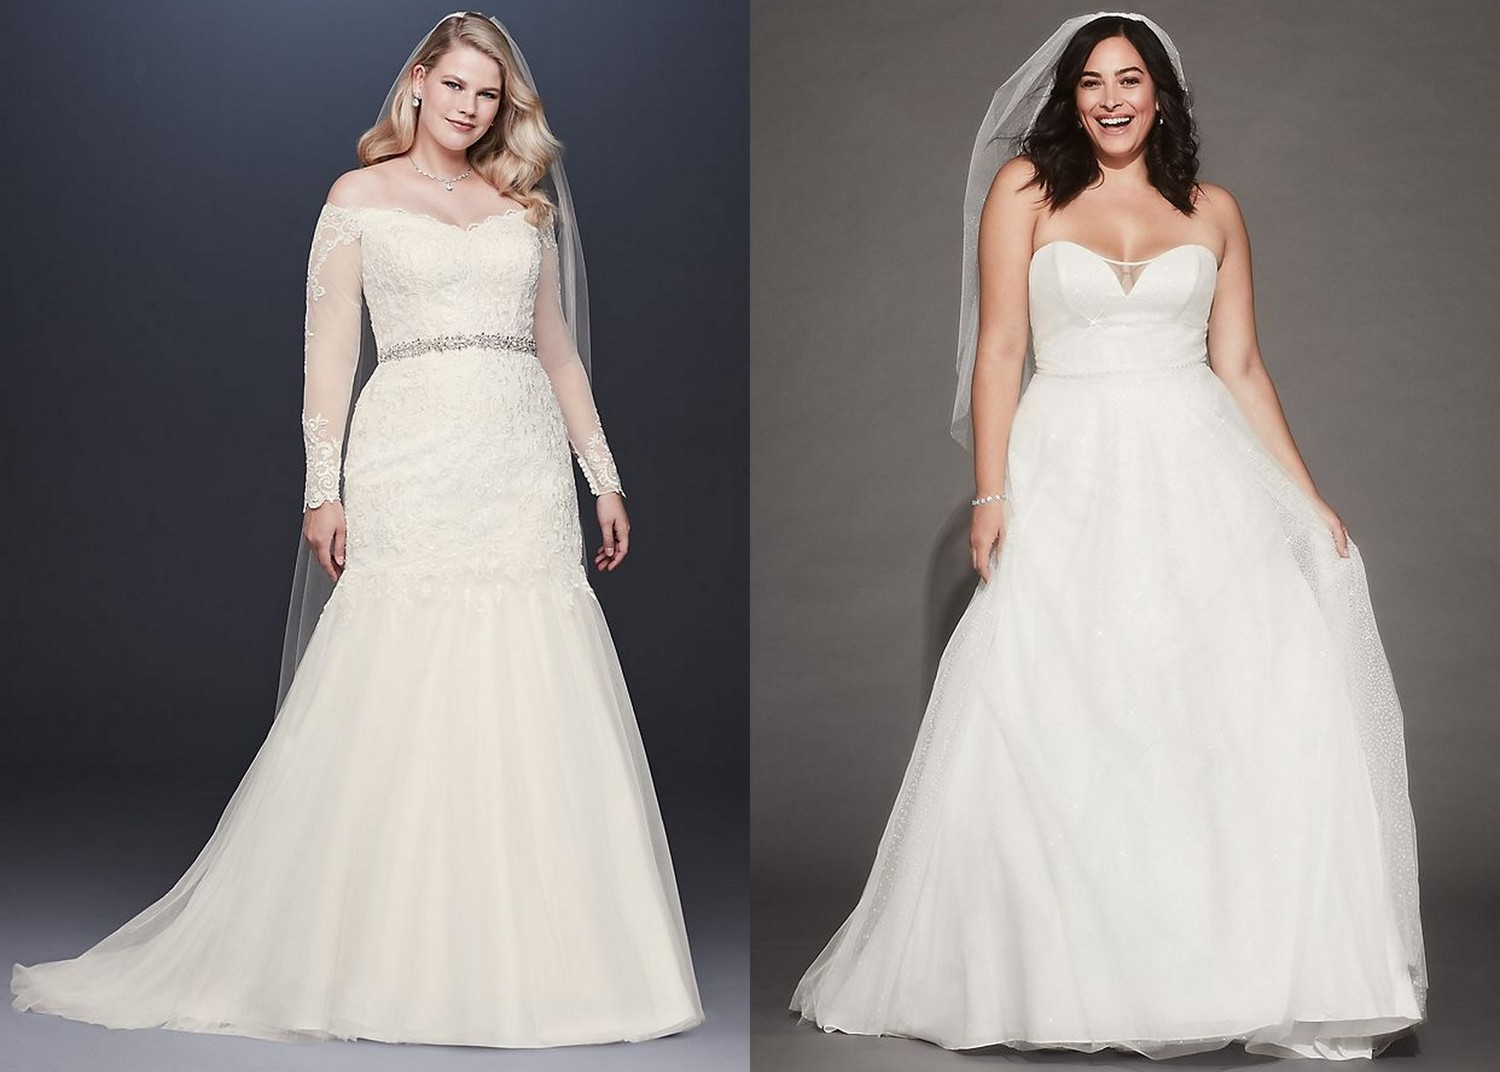 Affordable Plus Size Bridal Gowns Under $750